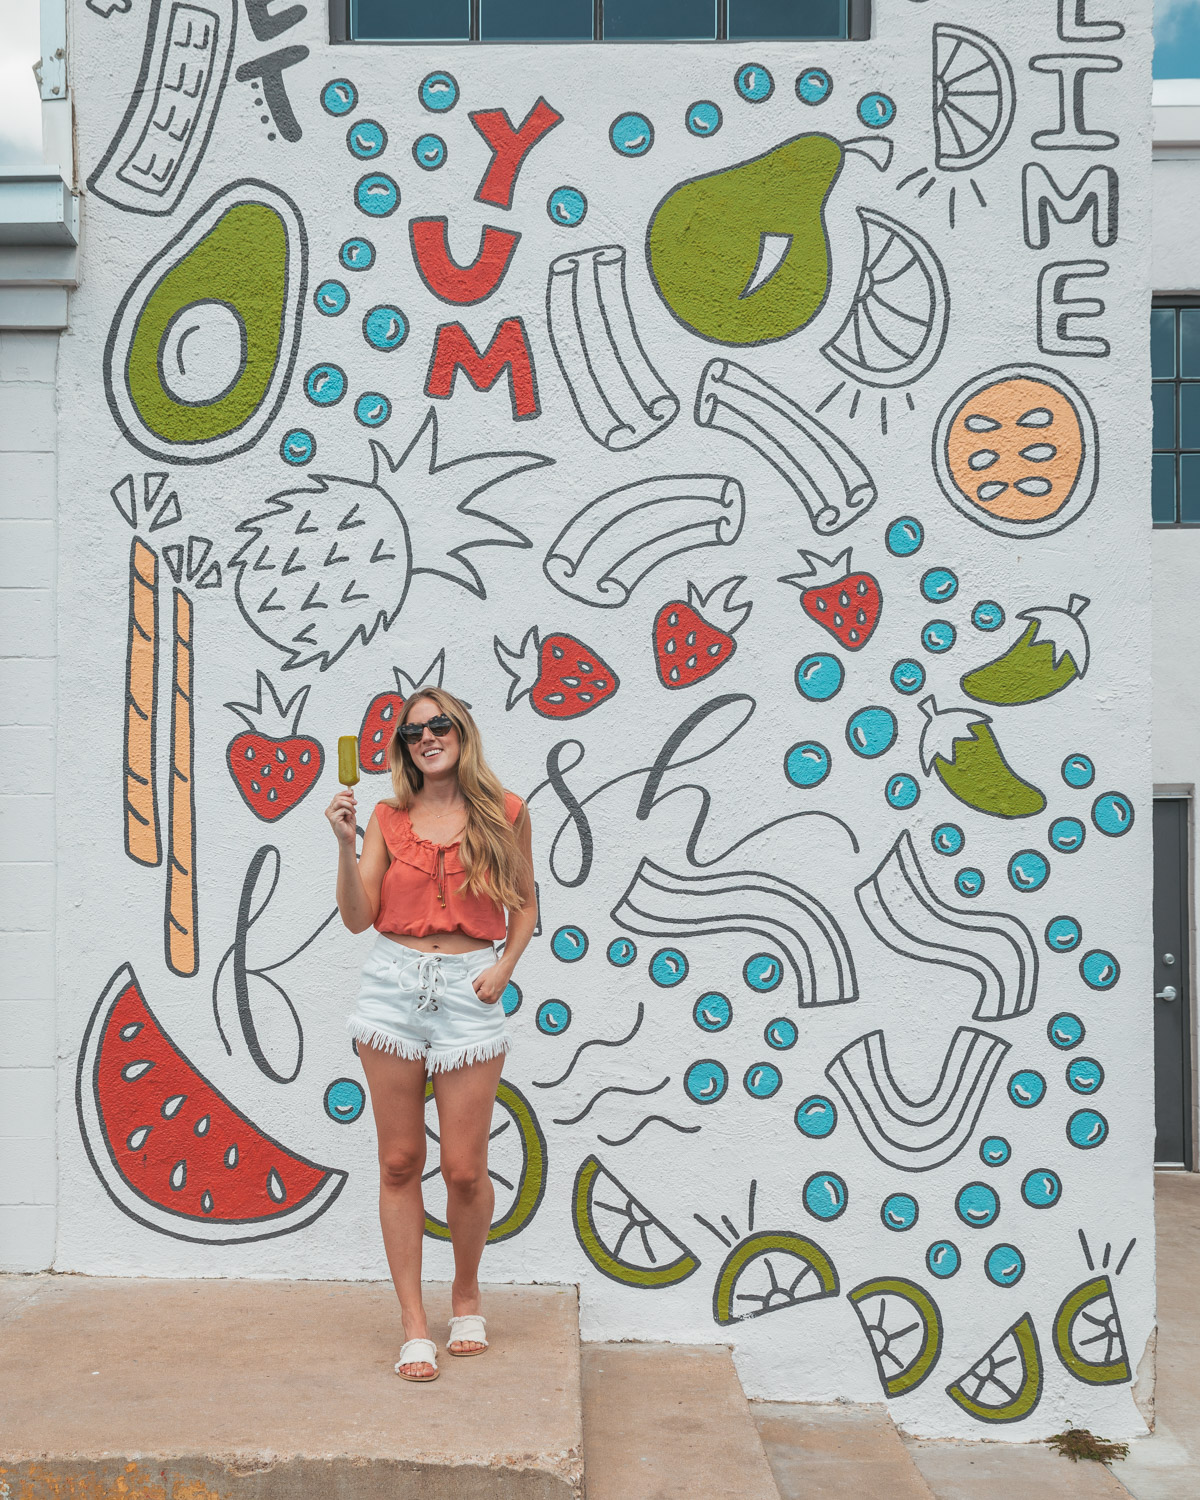 Yum, Fresh mural at Steel City Pops in Downtown Austin